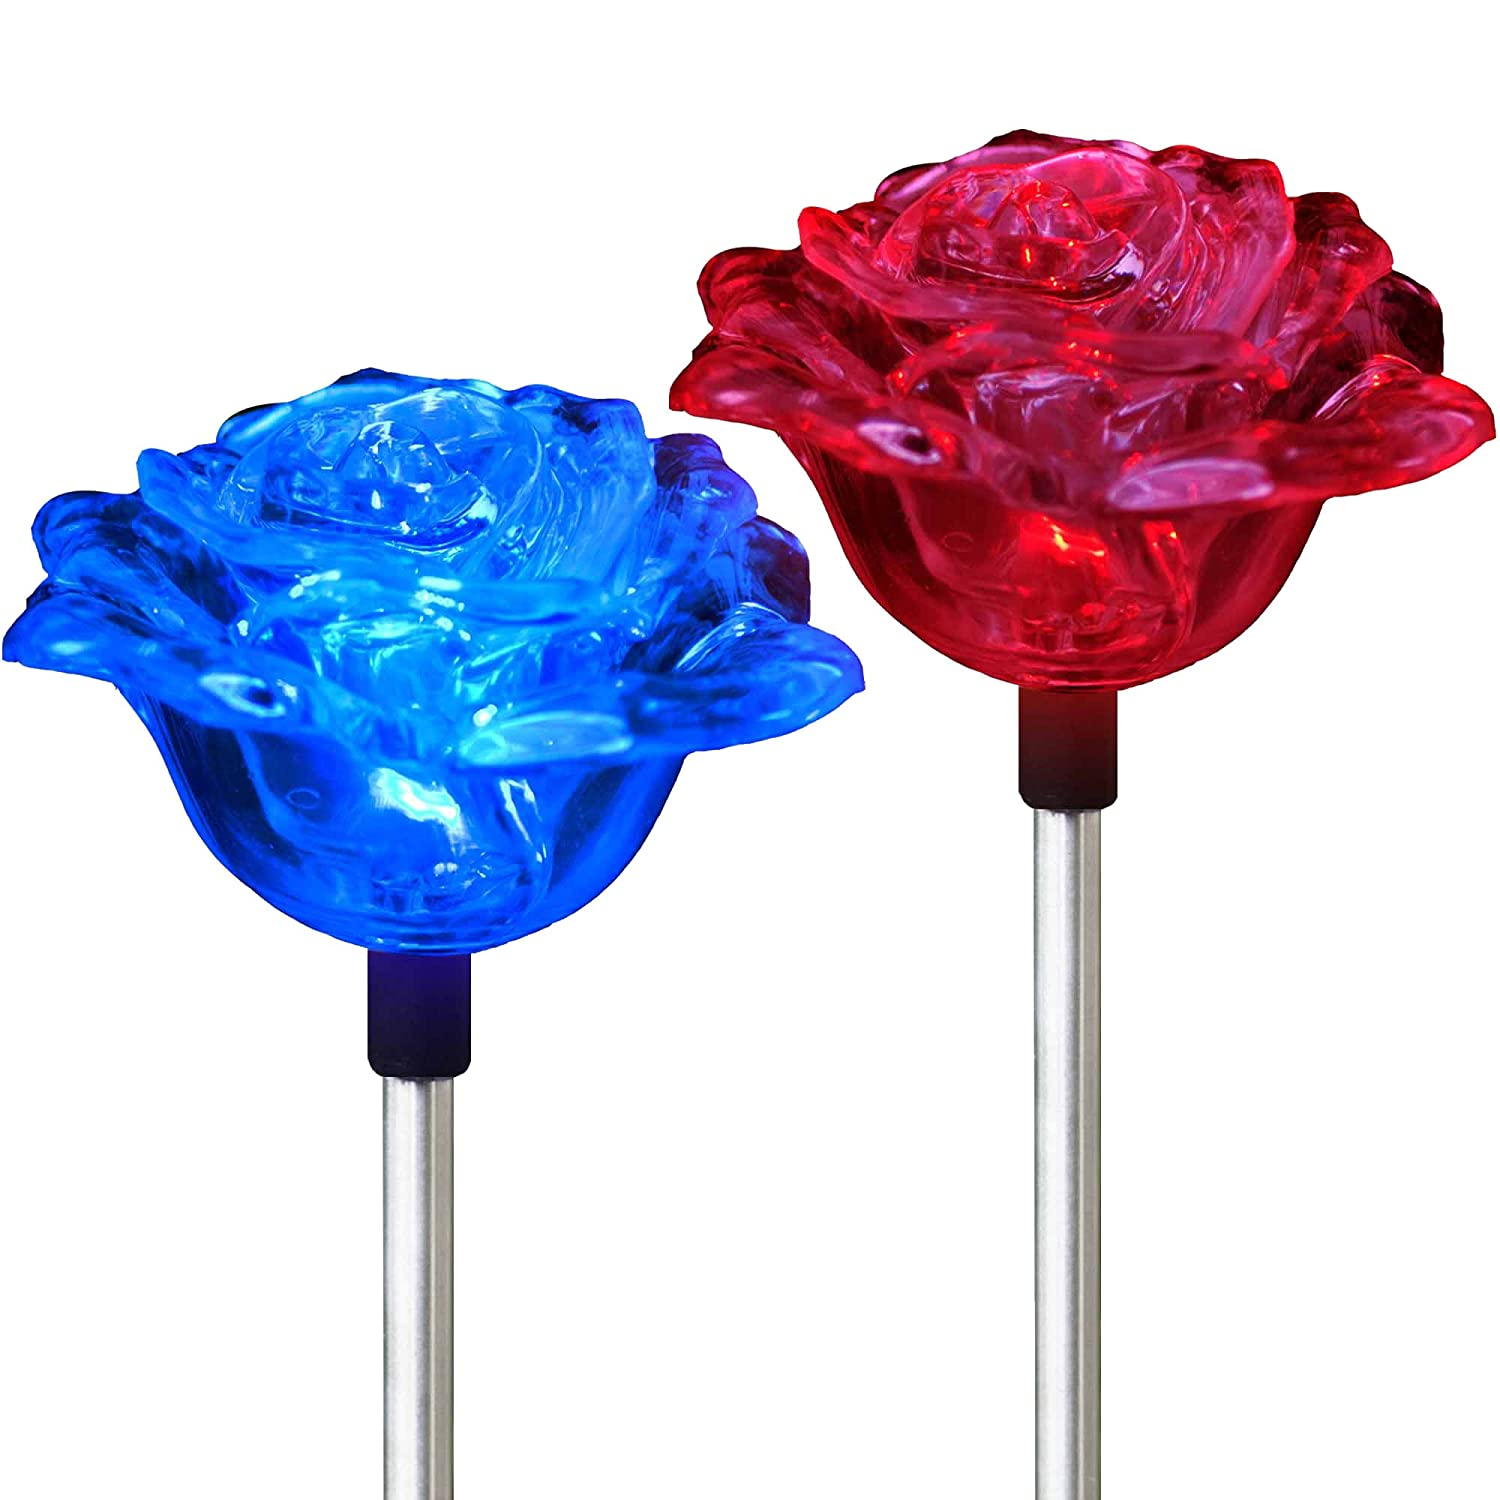 amazoncom solar rose lights holiday outdoor decoration color changing rose flower pathway garden stakes for christmas thanksgiving patio lawn yard path